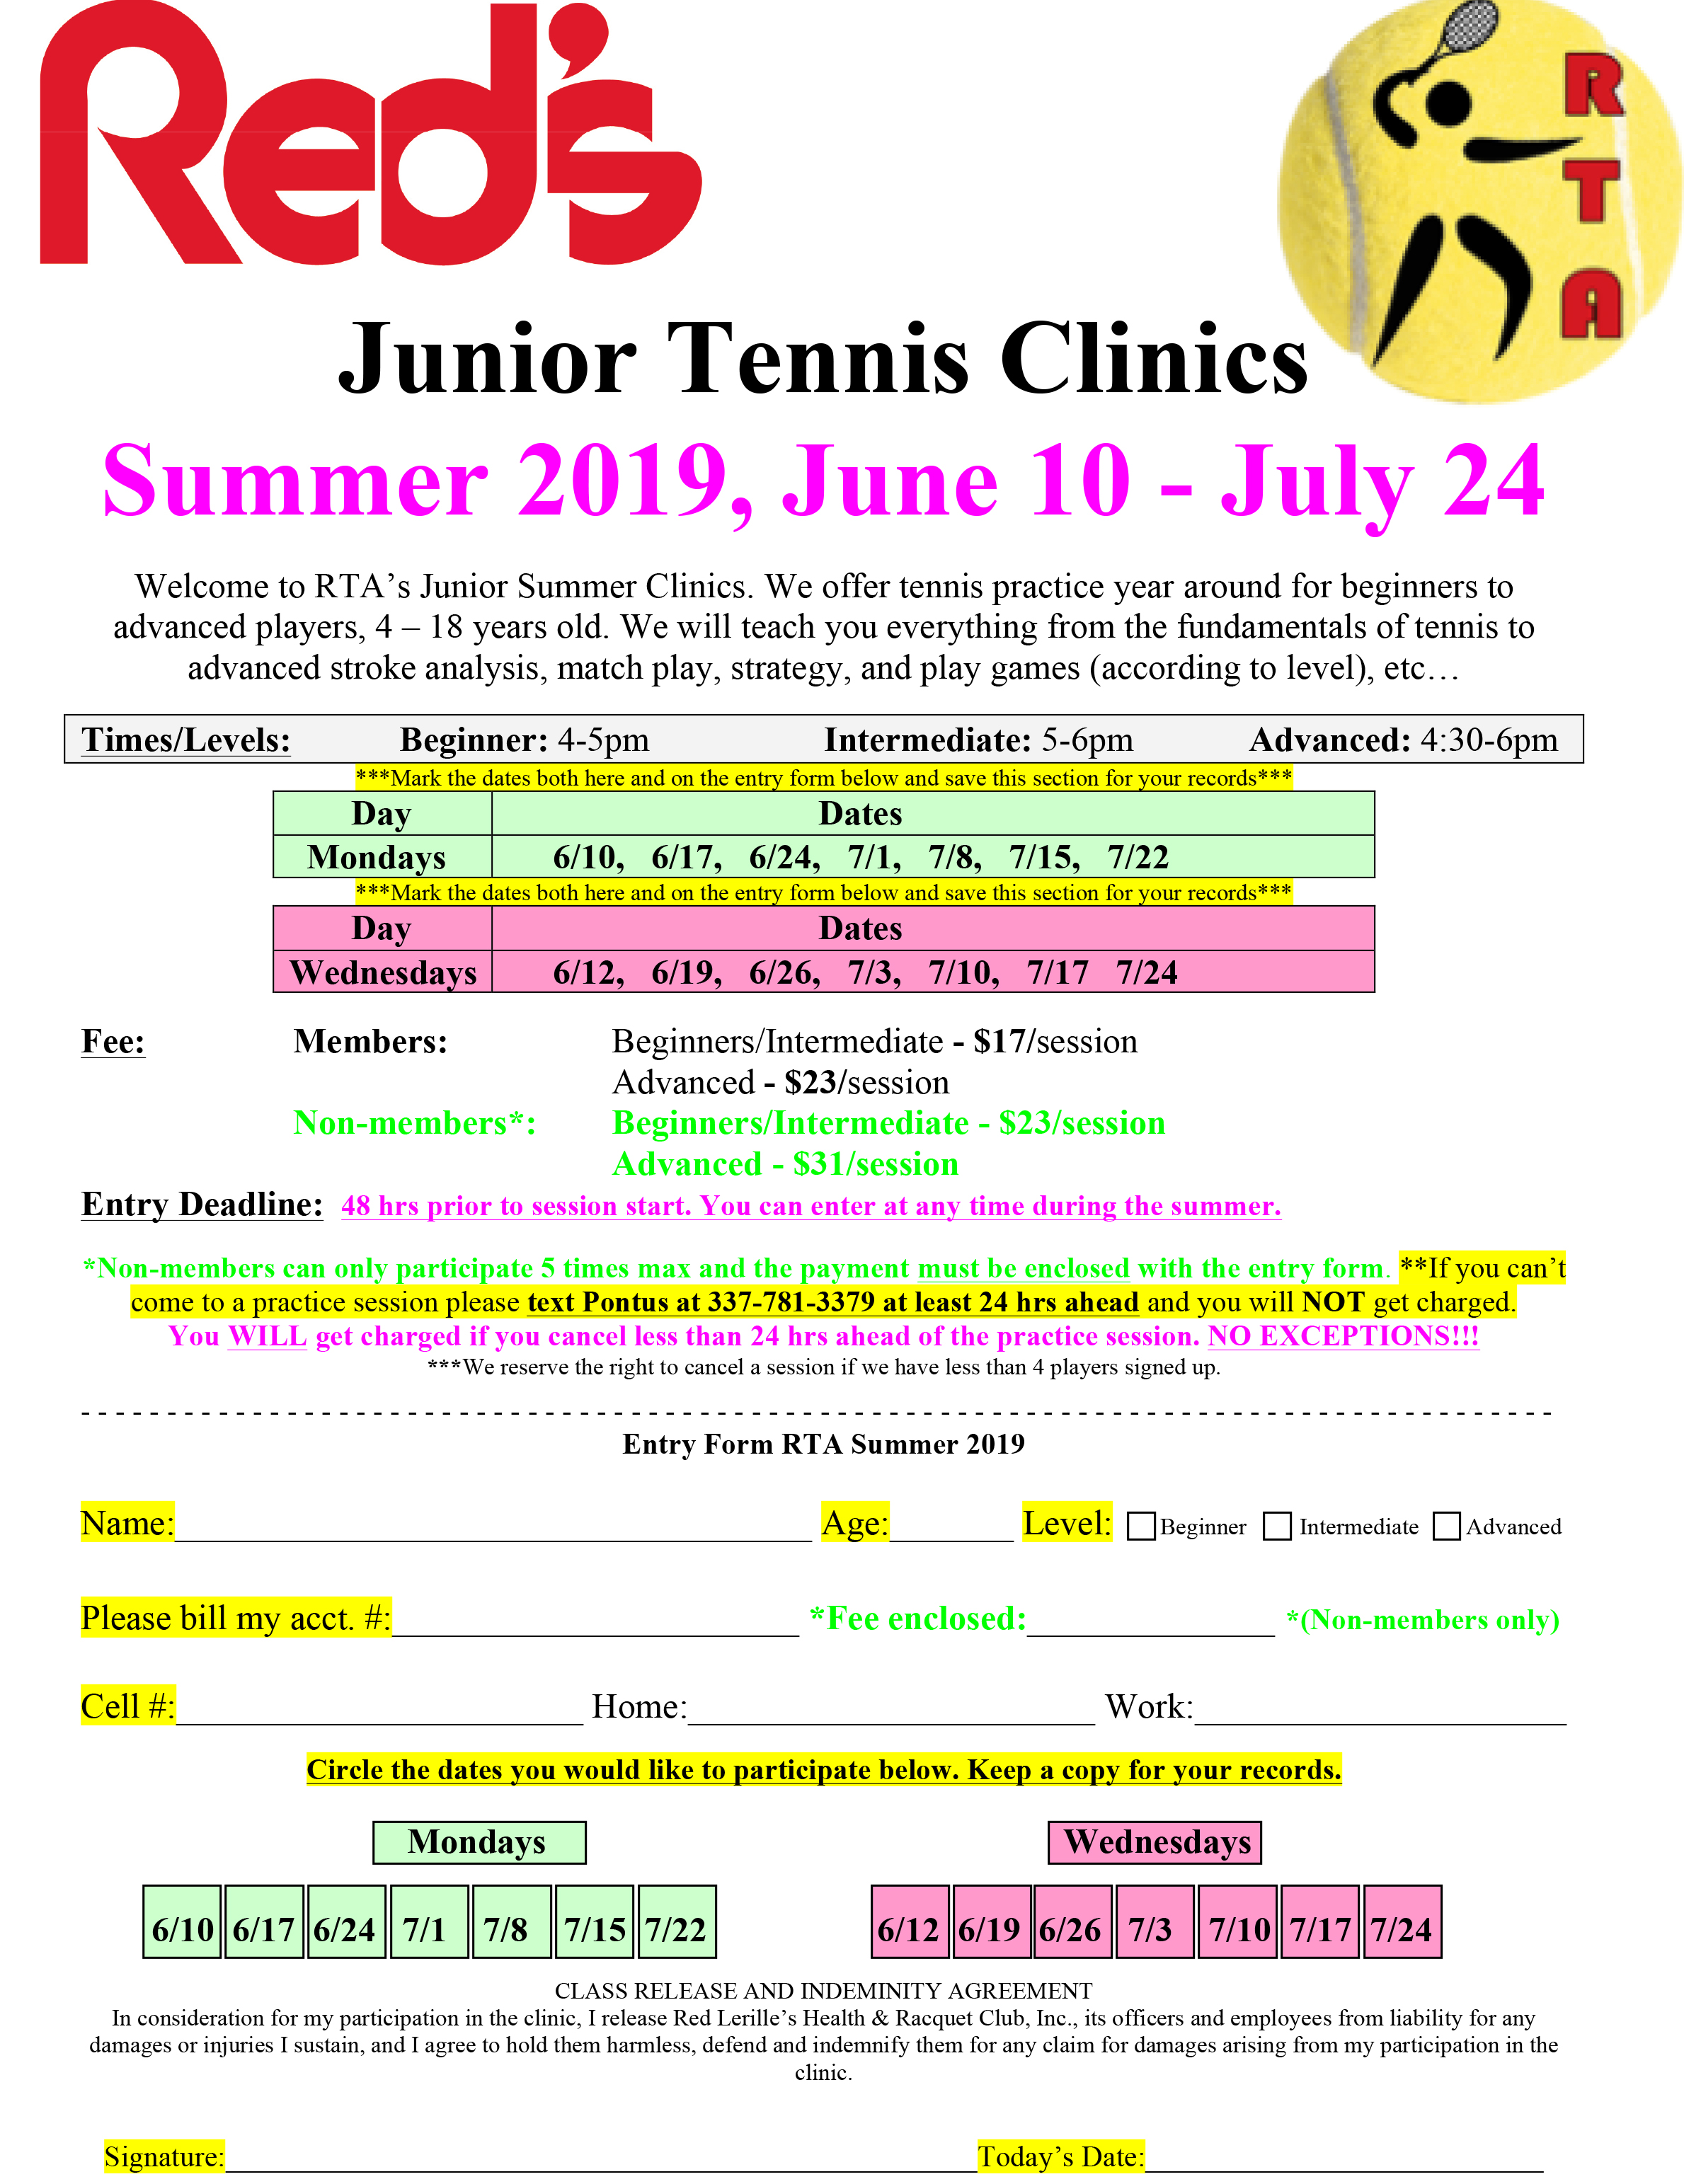 Registration Form for RTA summer 2019 at Red's.